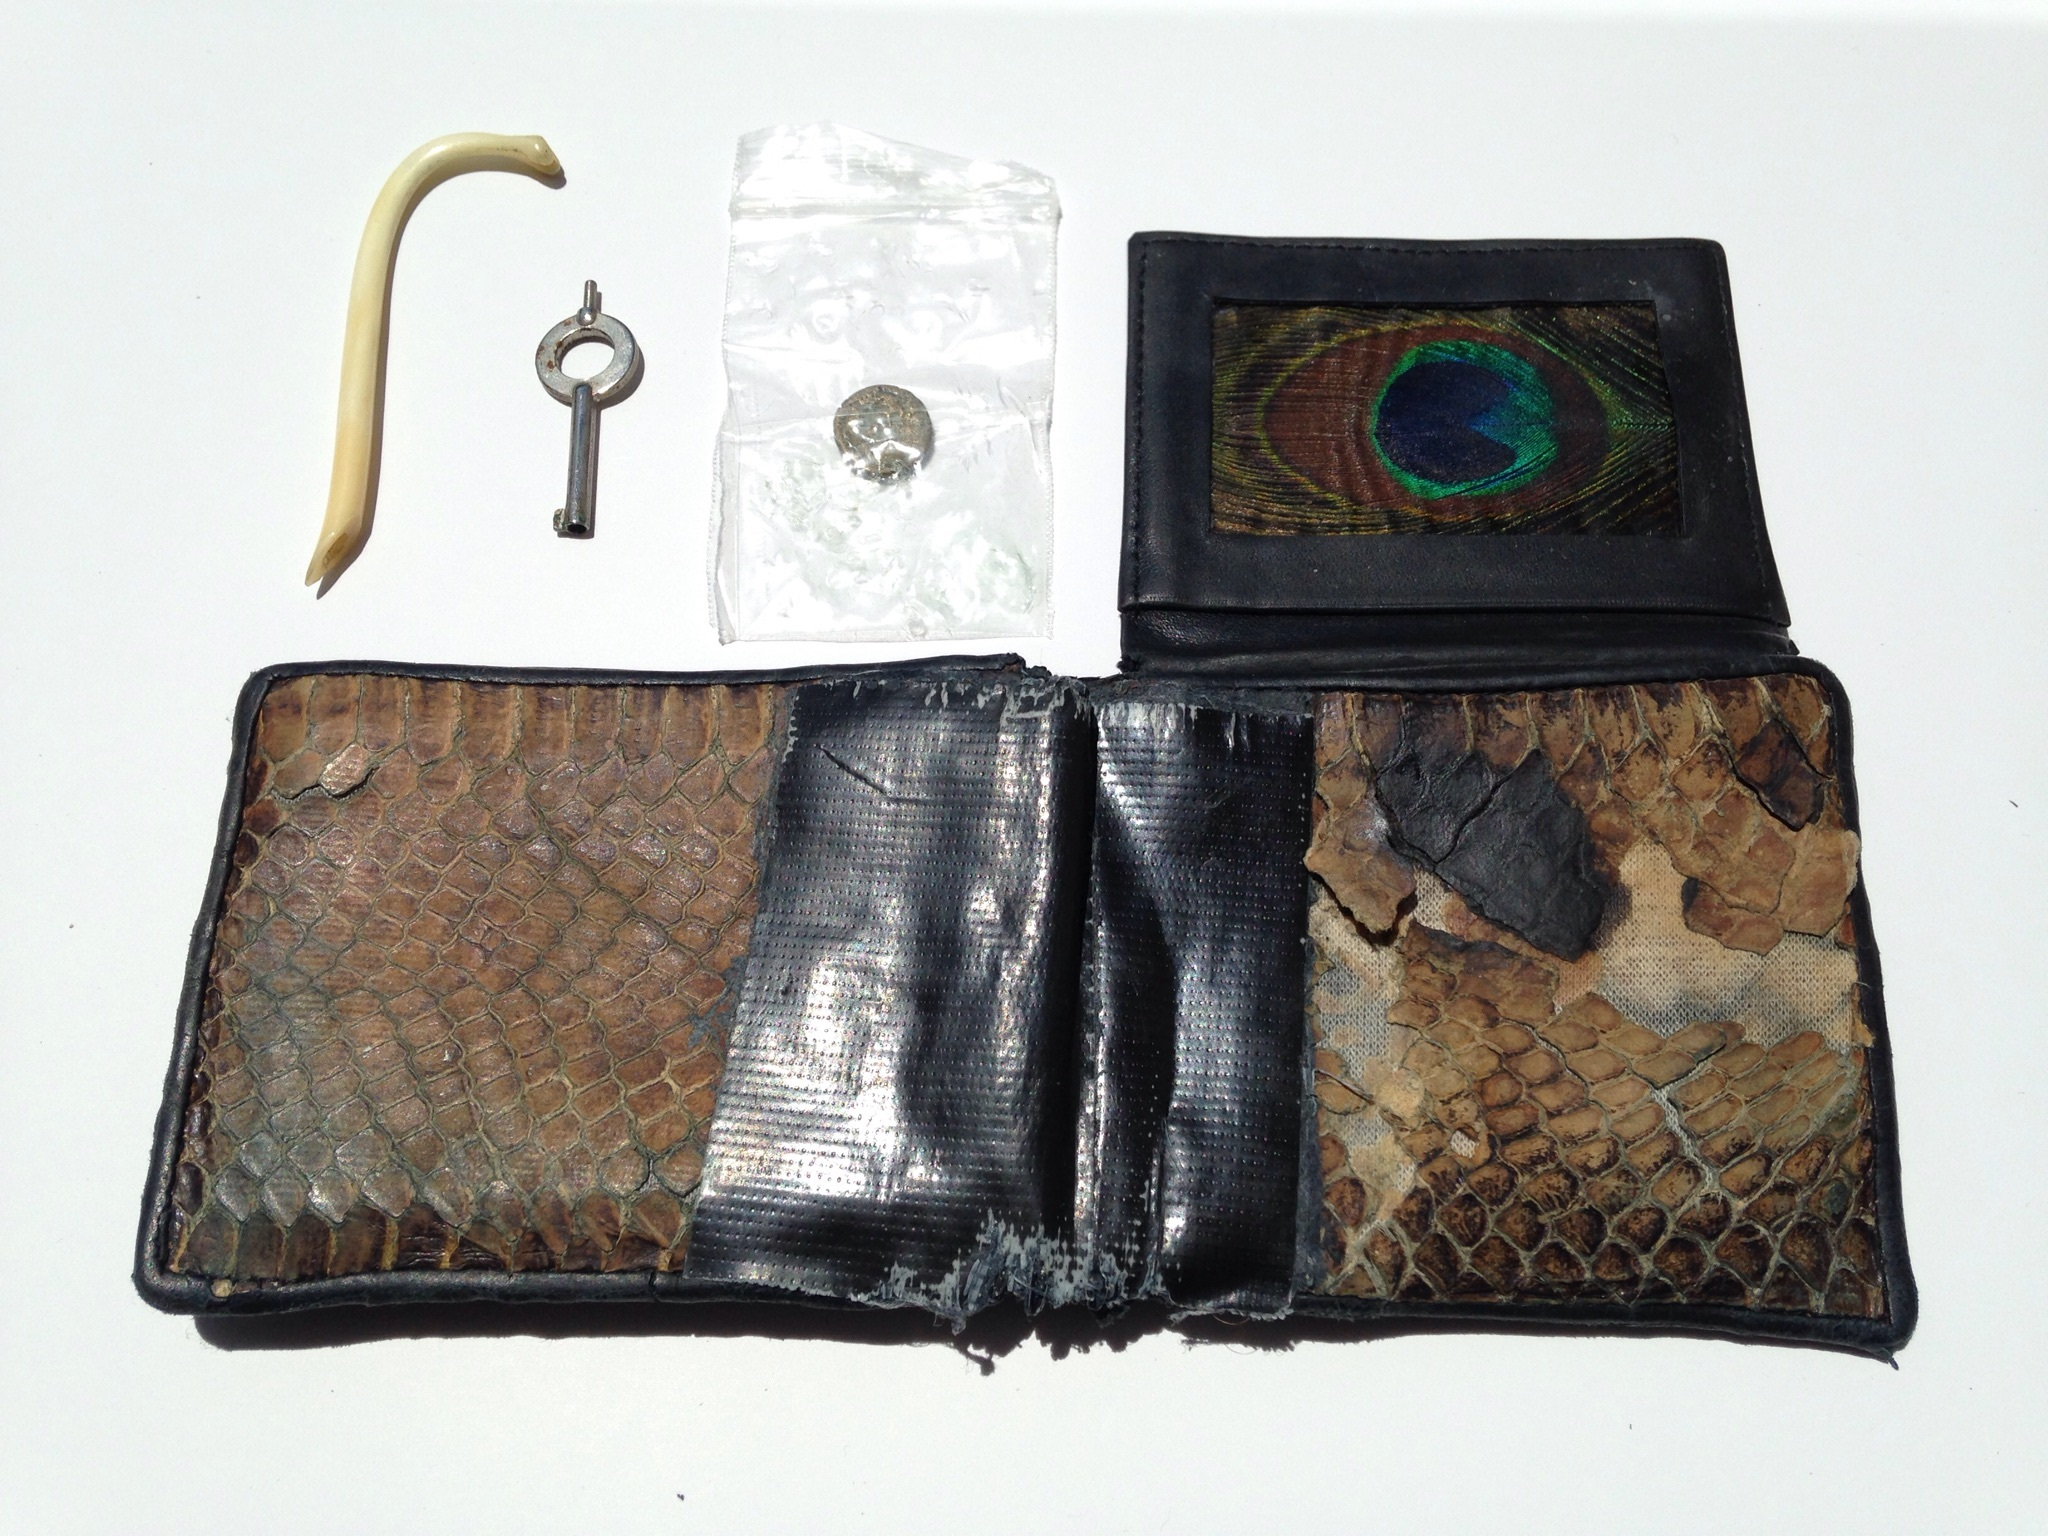 Untitled (Wallet I),  2013 Cobra skin wallet, duct tape, peacock feather, coon-dick toothpick, Smith & Wesson police issue handcuff key, 4th century BCE Greek coin depicting Dionysus 7.5 x 8.5 inches